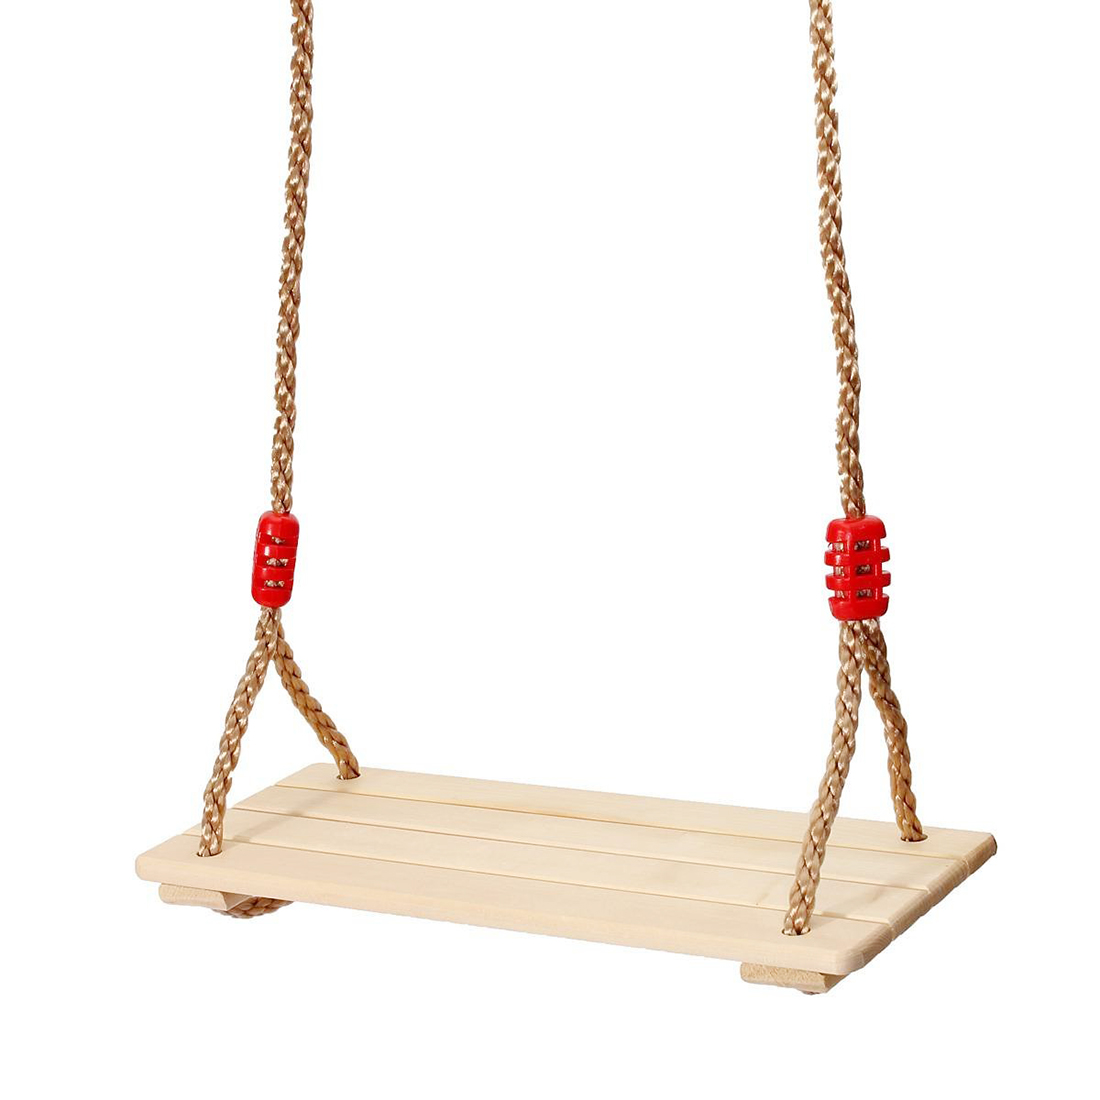 Adults and children Swing Wooden Swing with Rope Toys for Children Outdoor Garden Swings ...